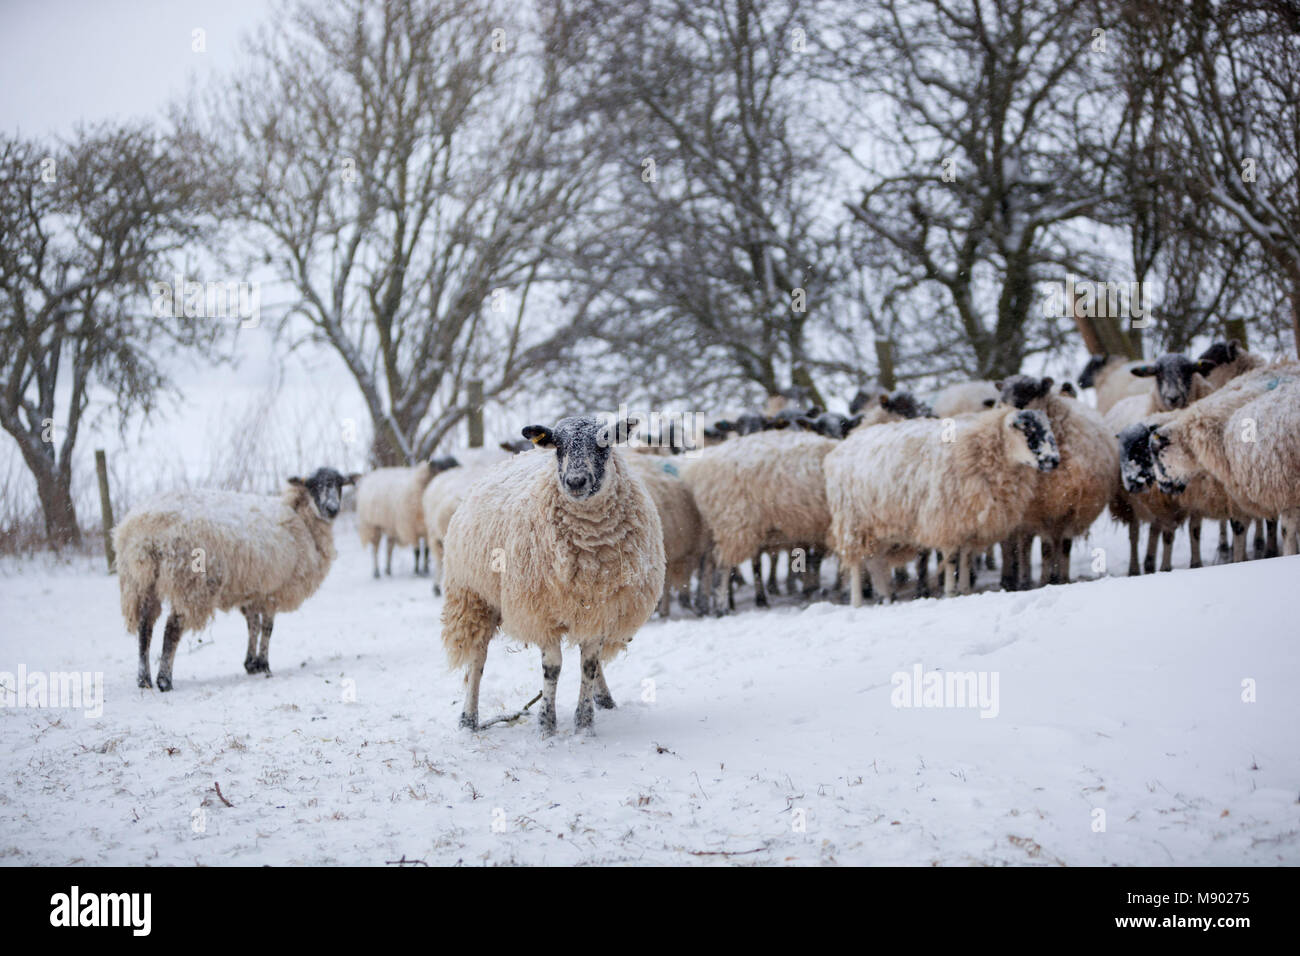 White sheep huddled together sheltering from a snow storm, Chipping Campden, The Cotswolds, Gloucestershire, England, - Stock Image